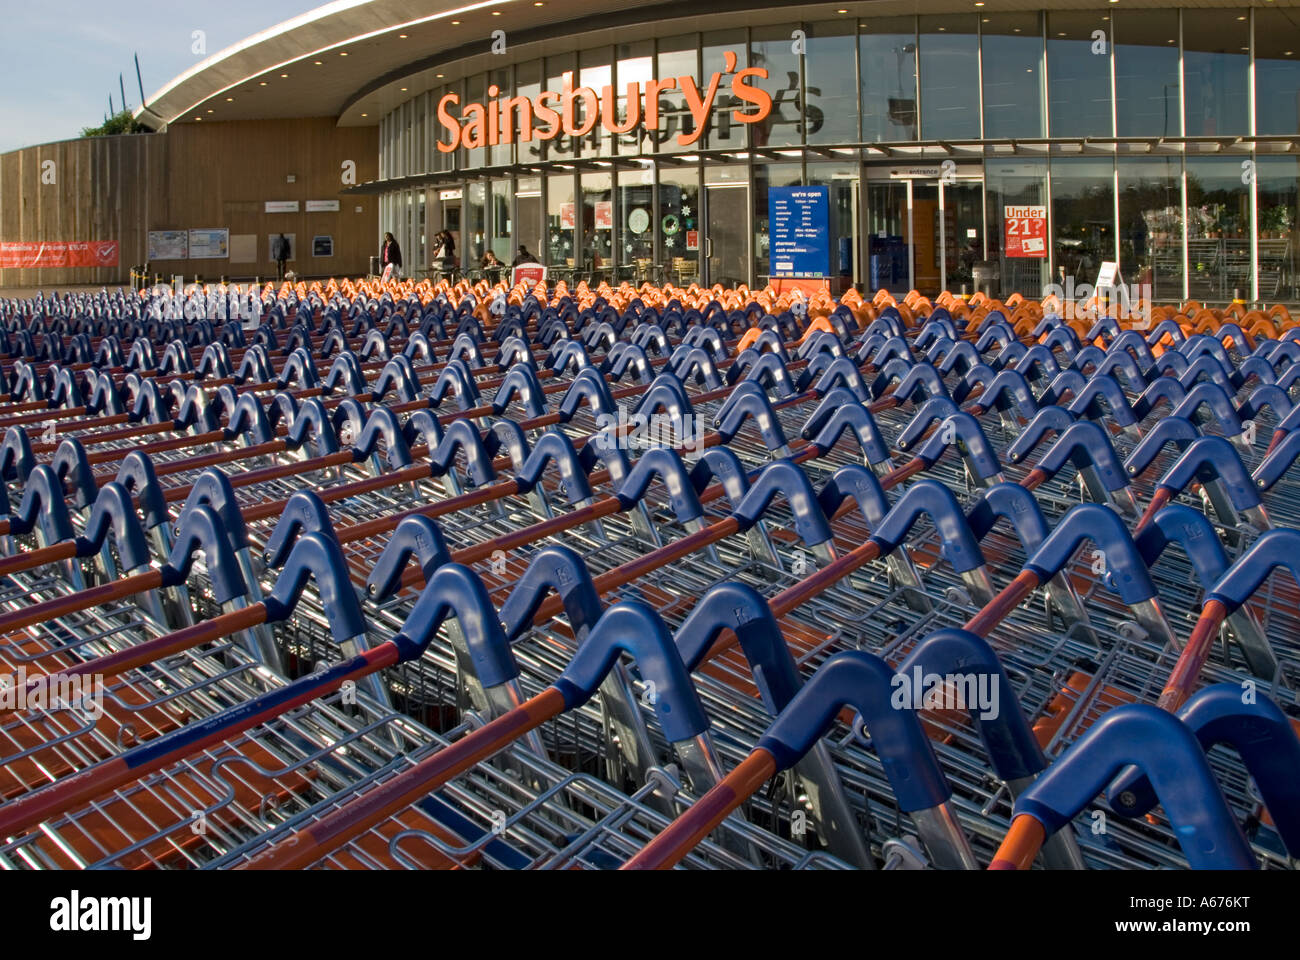 Large concentration of Sainsburys supermarket trolleys in front of store entrance - Stock Image